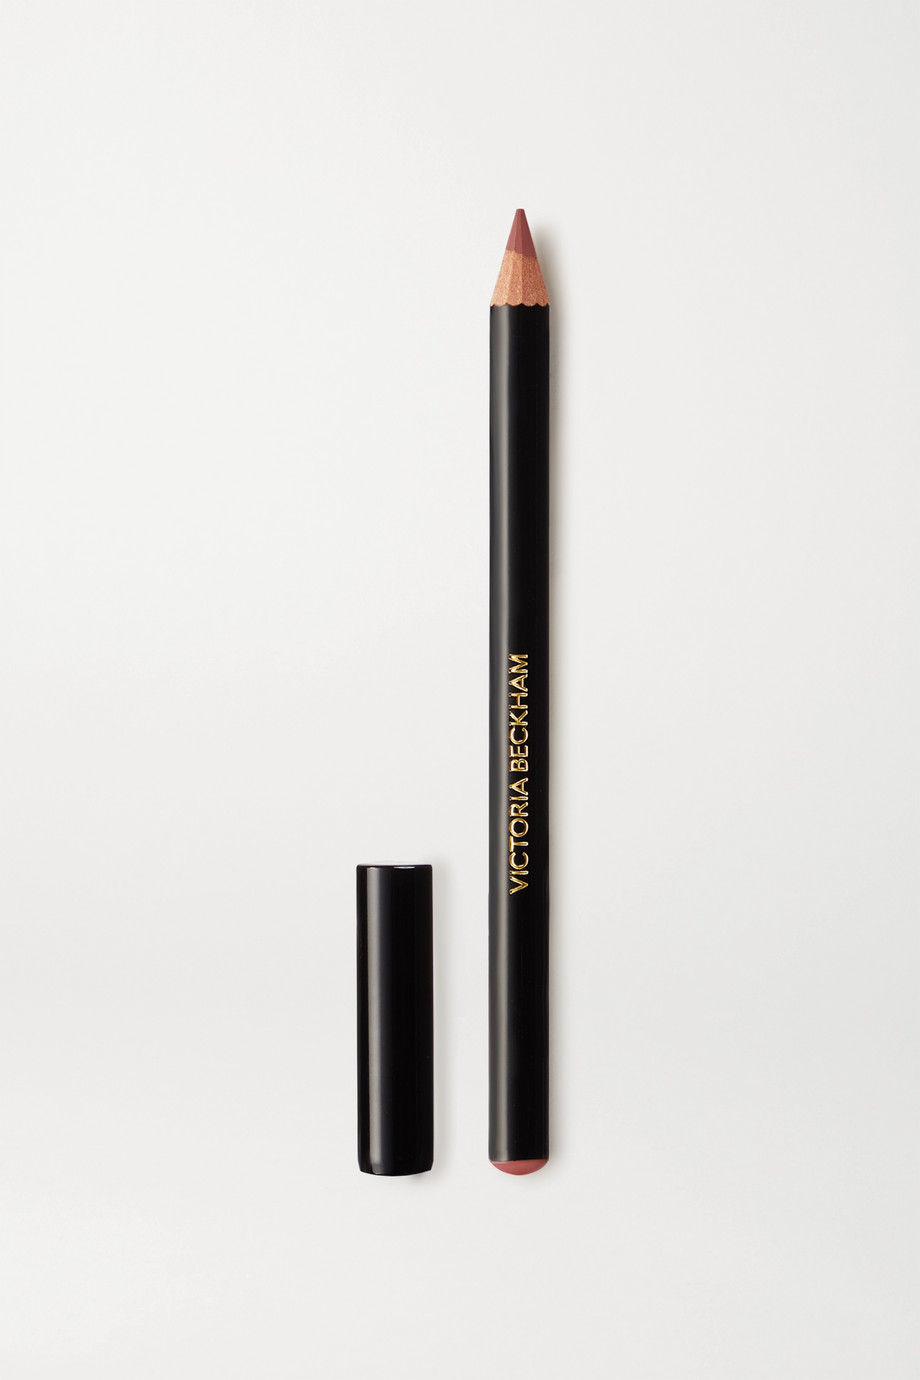 Victoria Beckham Beauty Lip Definer - 03